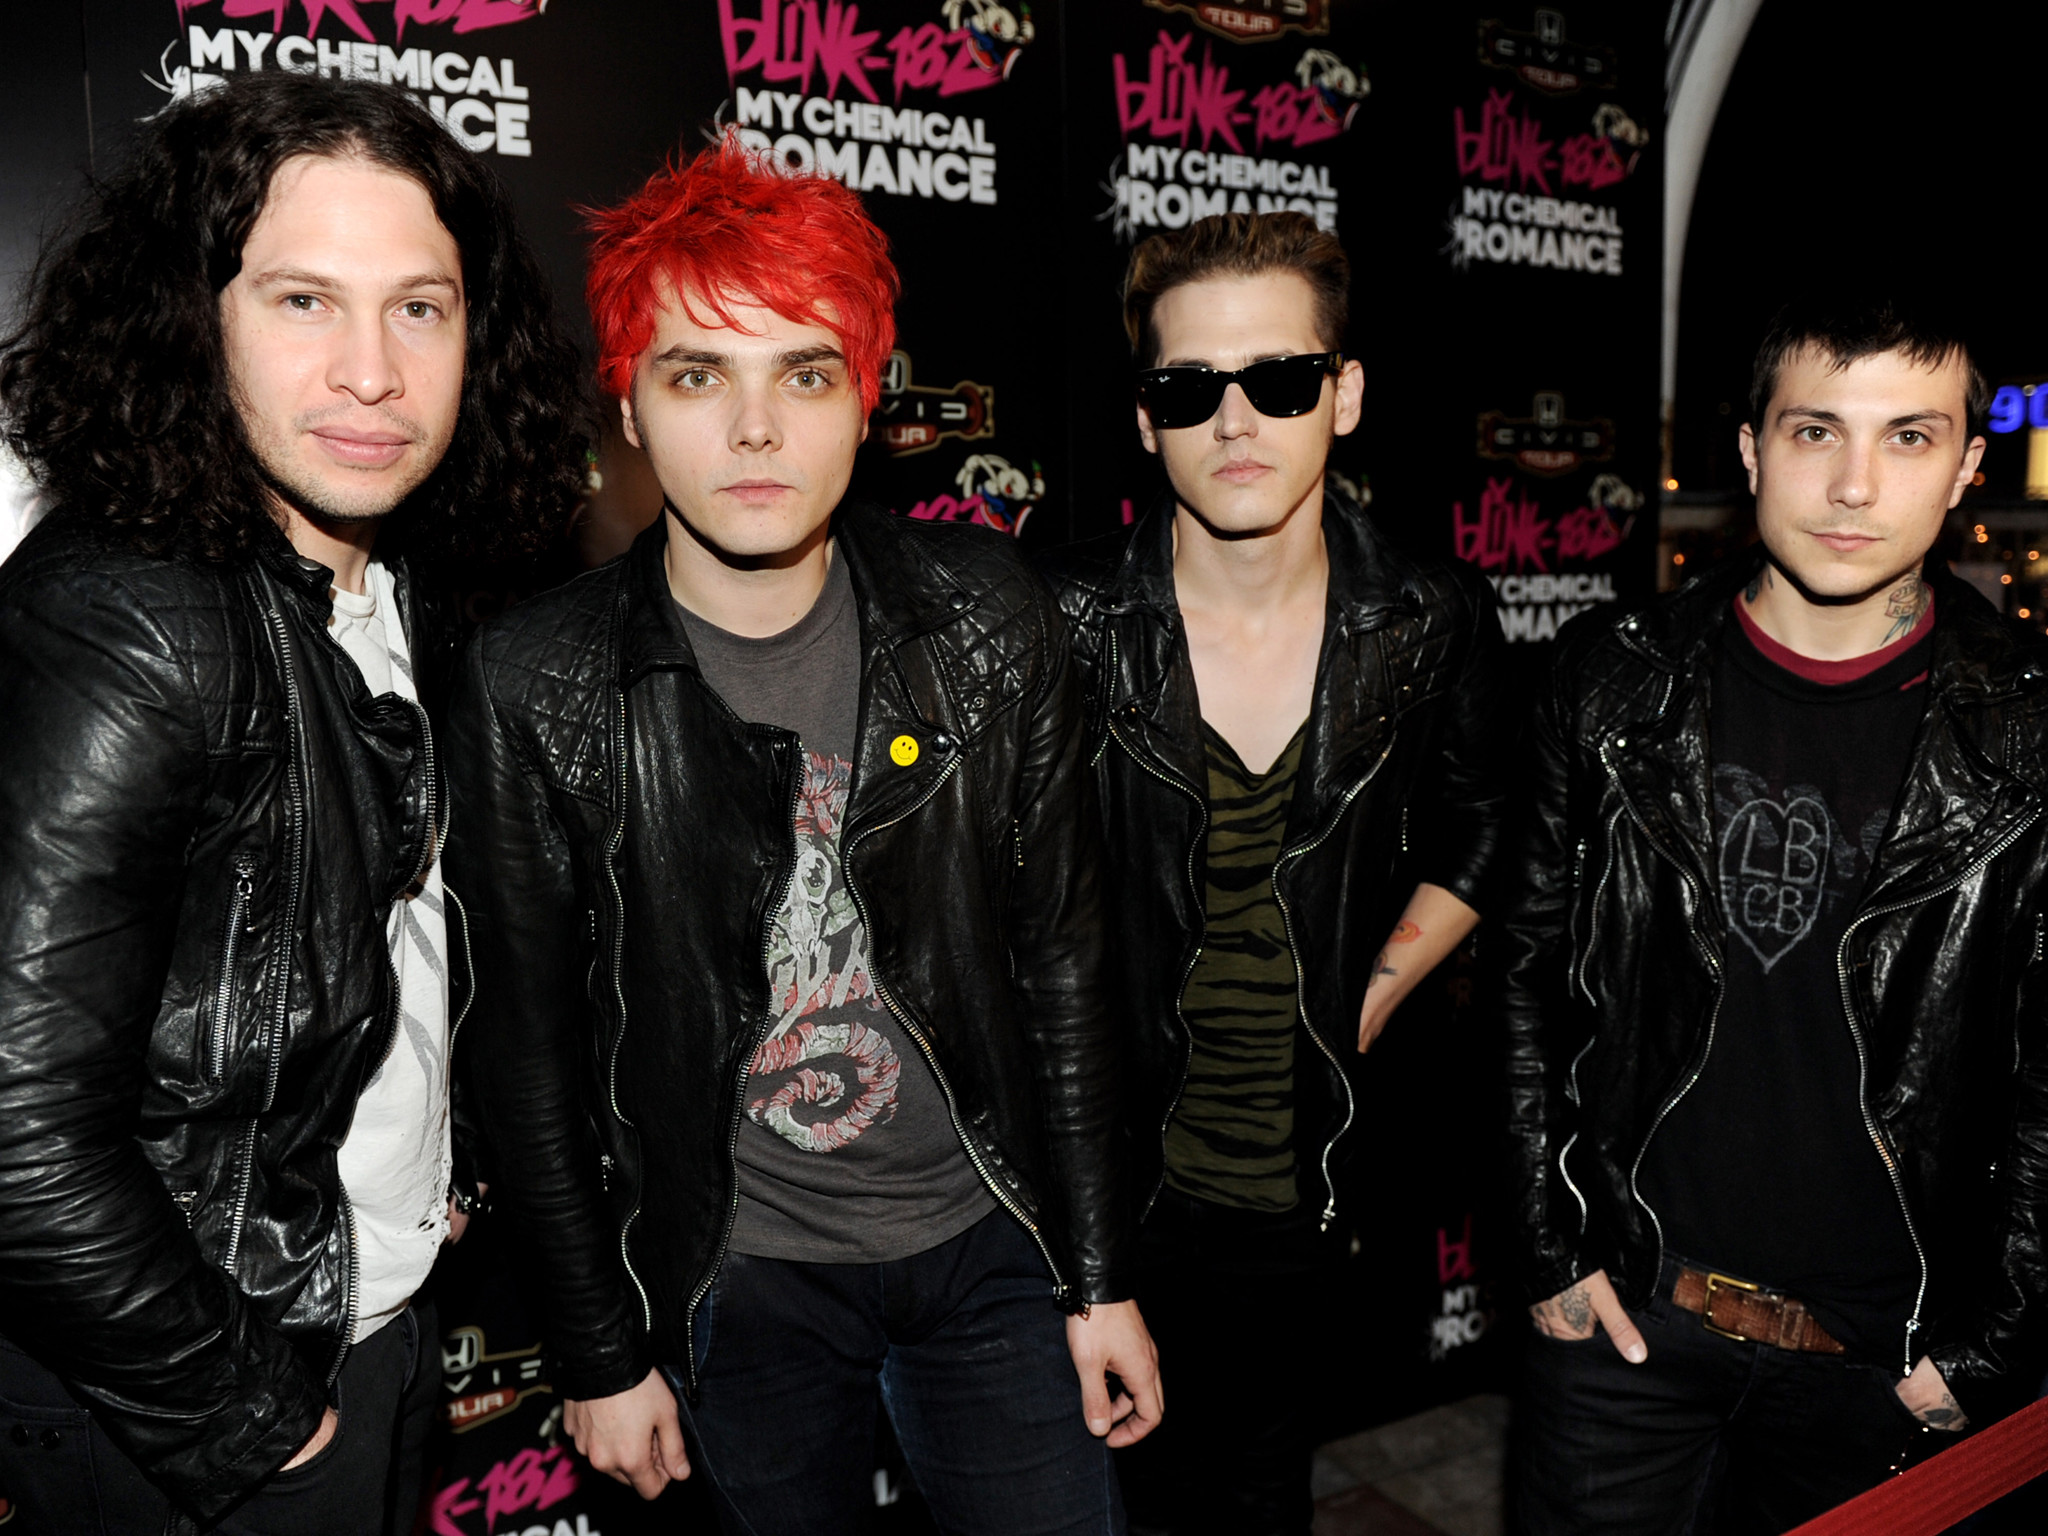 2048x1536 My-Chemical-Romance-HD-Pictures